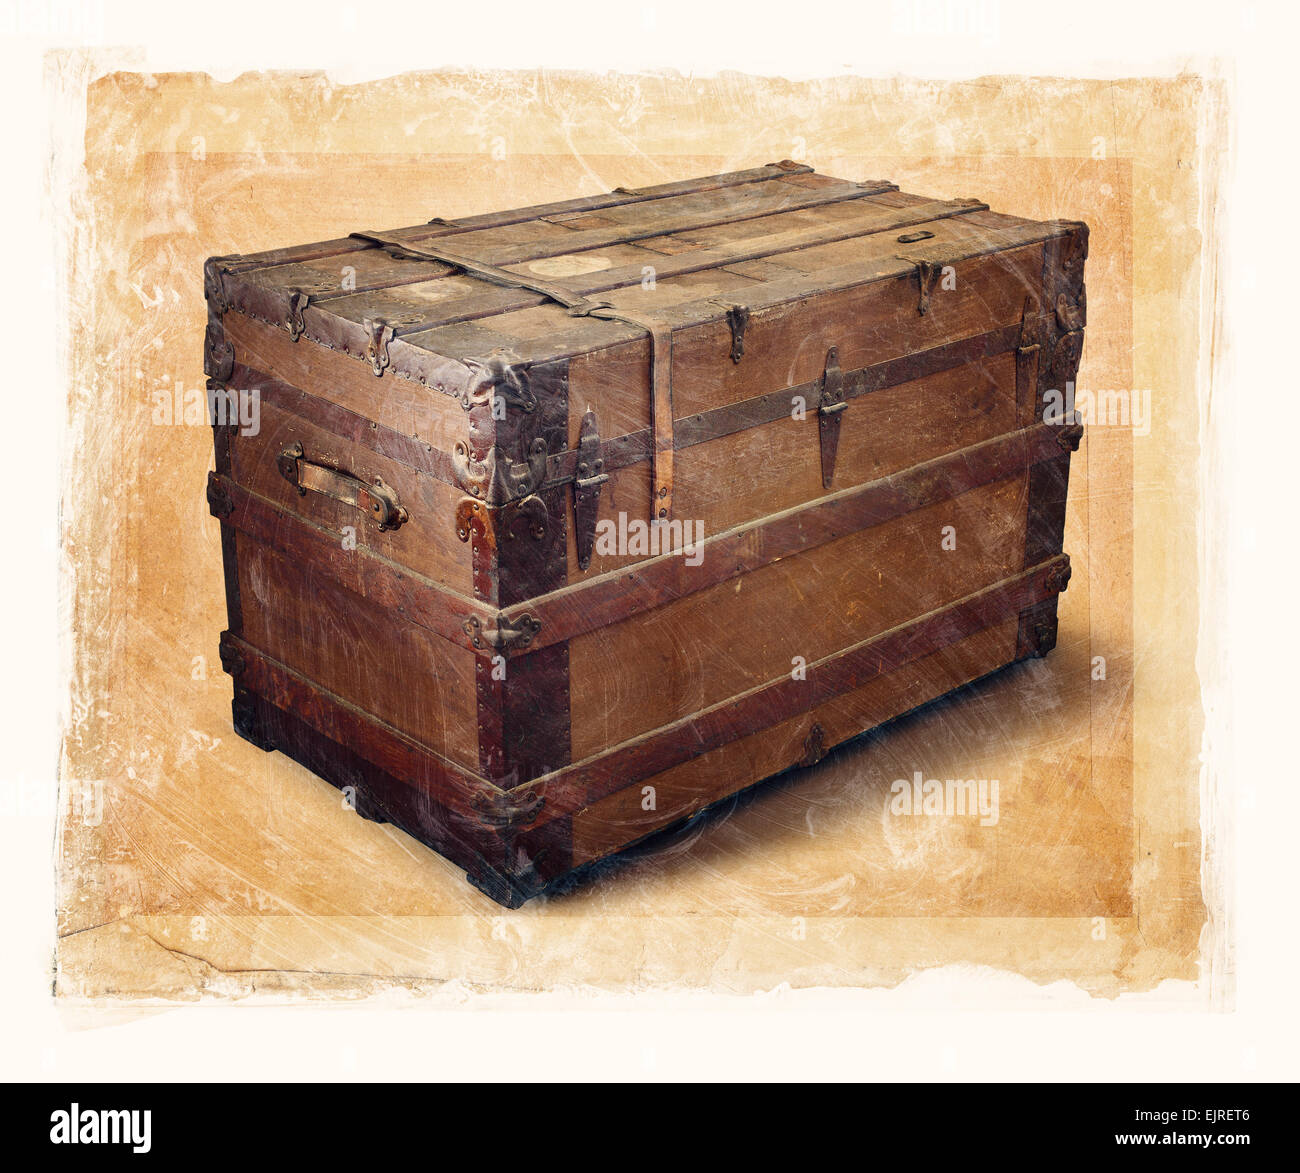 Grainy and gritty image of an old steamer trunk. - Stock Image